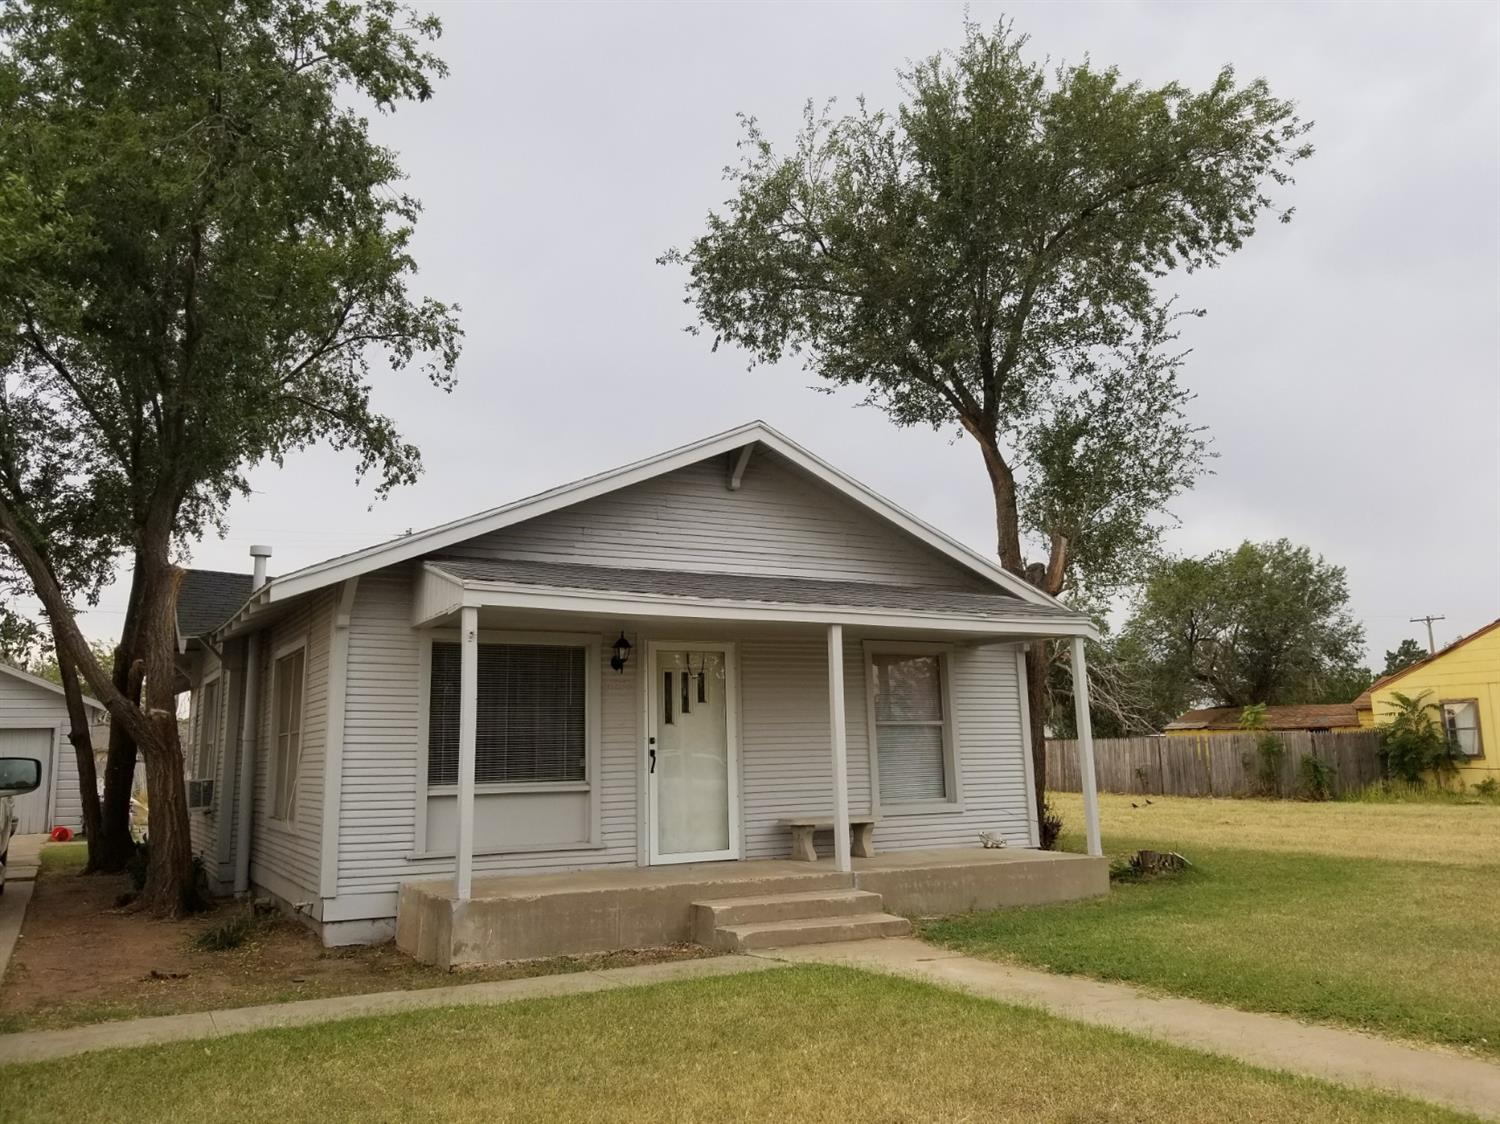 520 E 35th Street, Lubbock in Lubbock County, TX 79404 Home for Sale